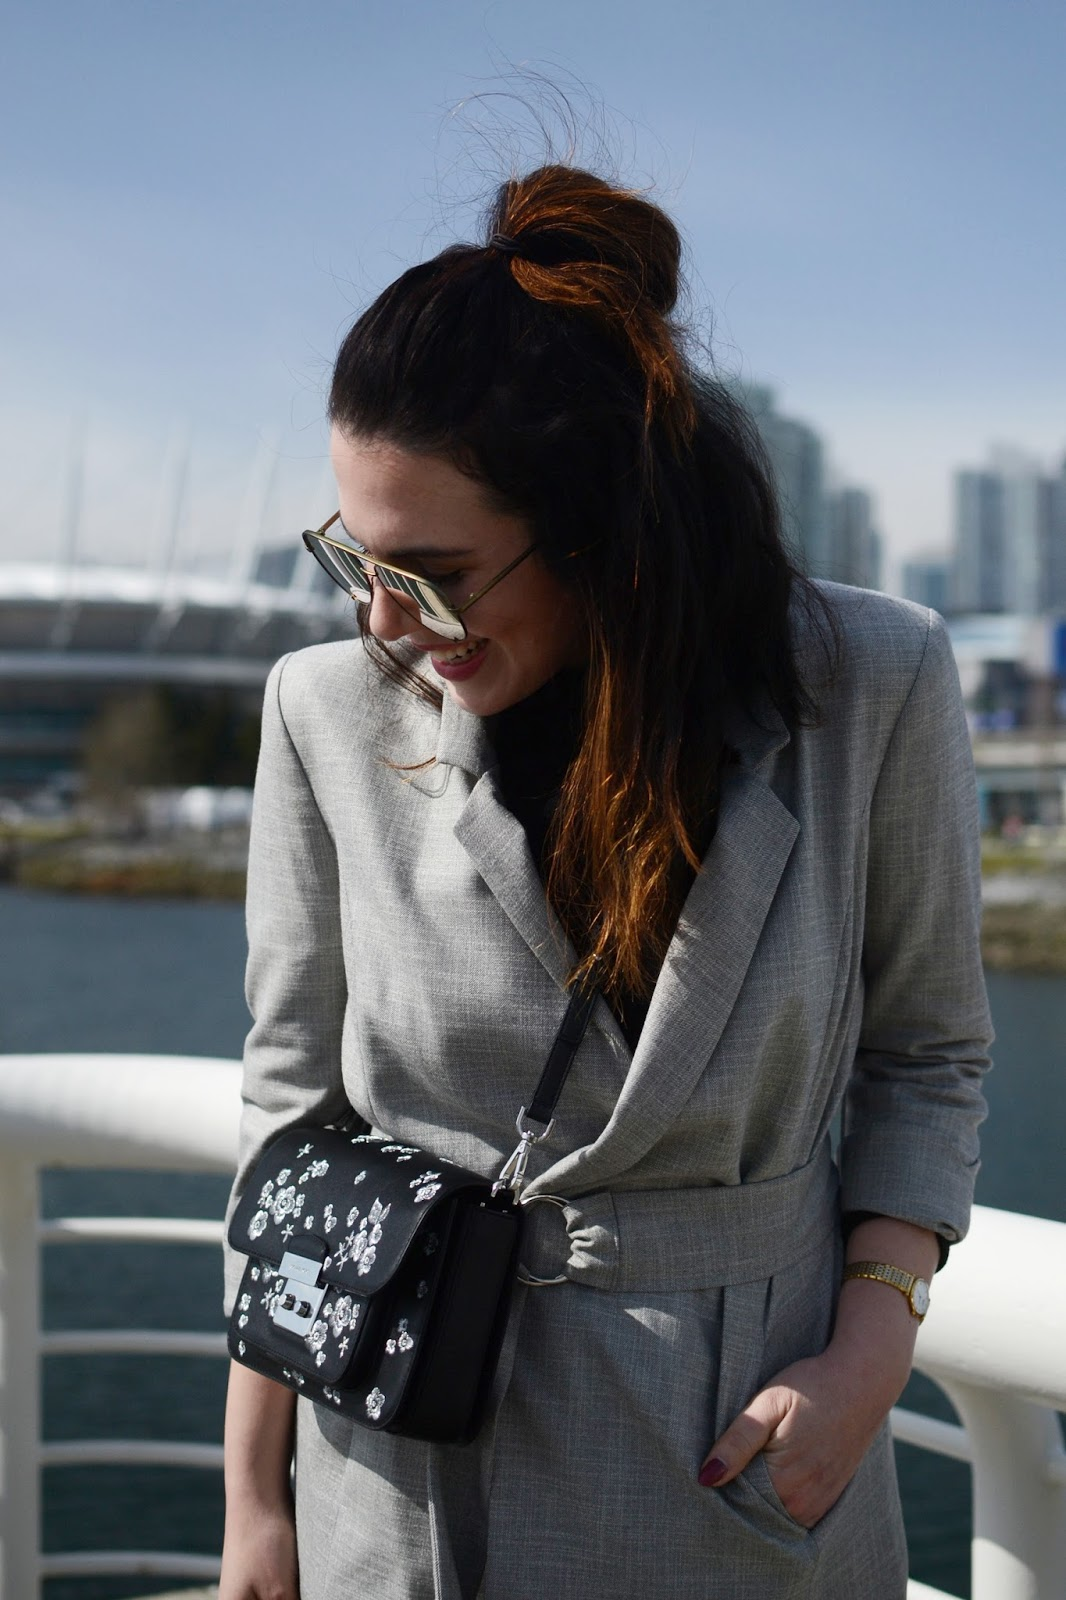 Le Chateau belted blazer outfit levis wedgie jeans velvet ankle boots michael kors editors bag vancouver fashion blogger quay high key sunglasses